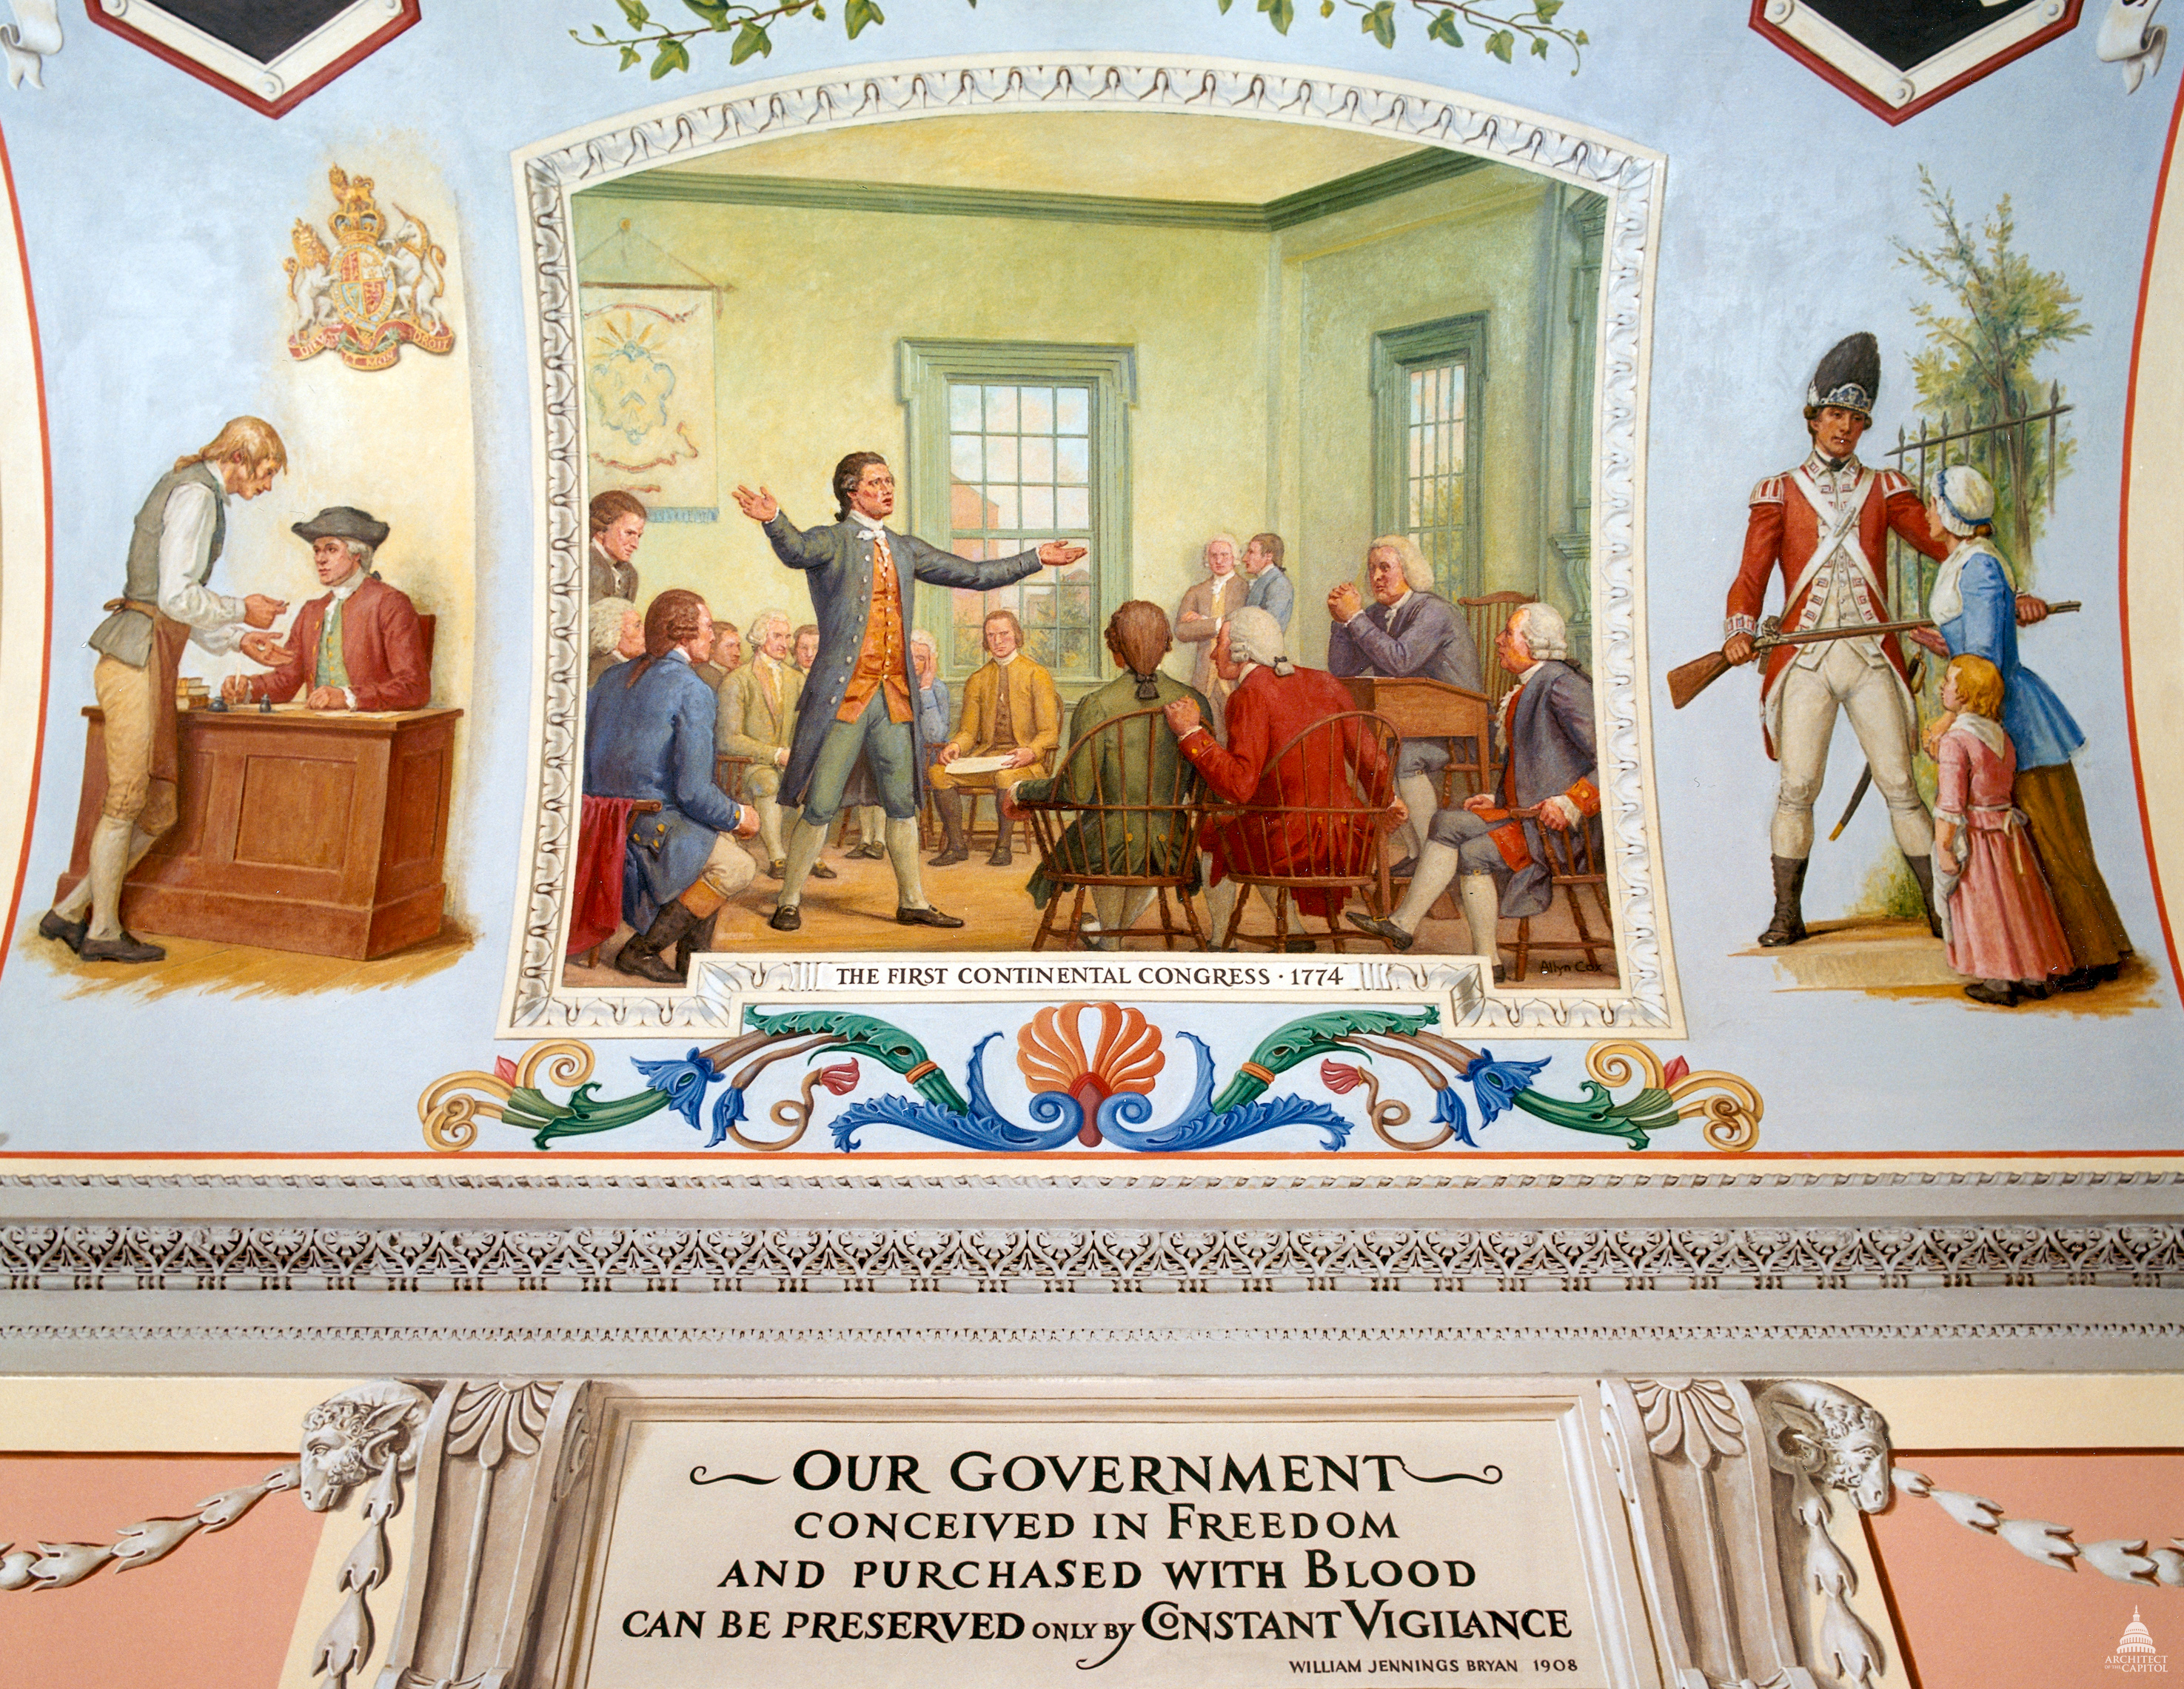 a history of the continental congress When the first continental congress met in 1774, it called for a boycott of british goods and an embargo on exports if england did not rescind the intolerable acts.